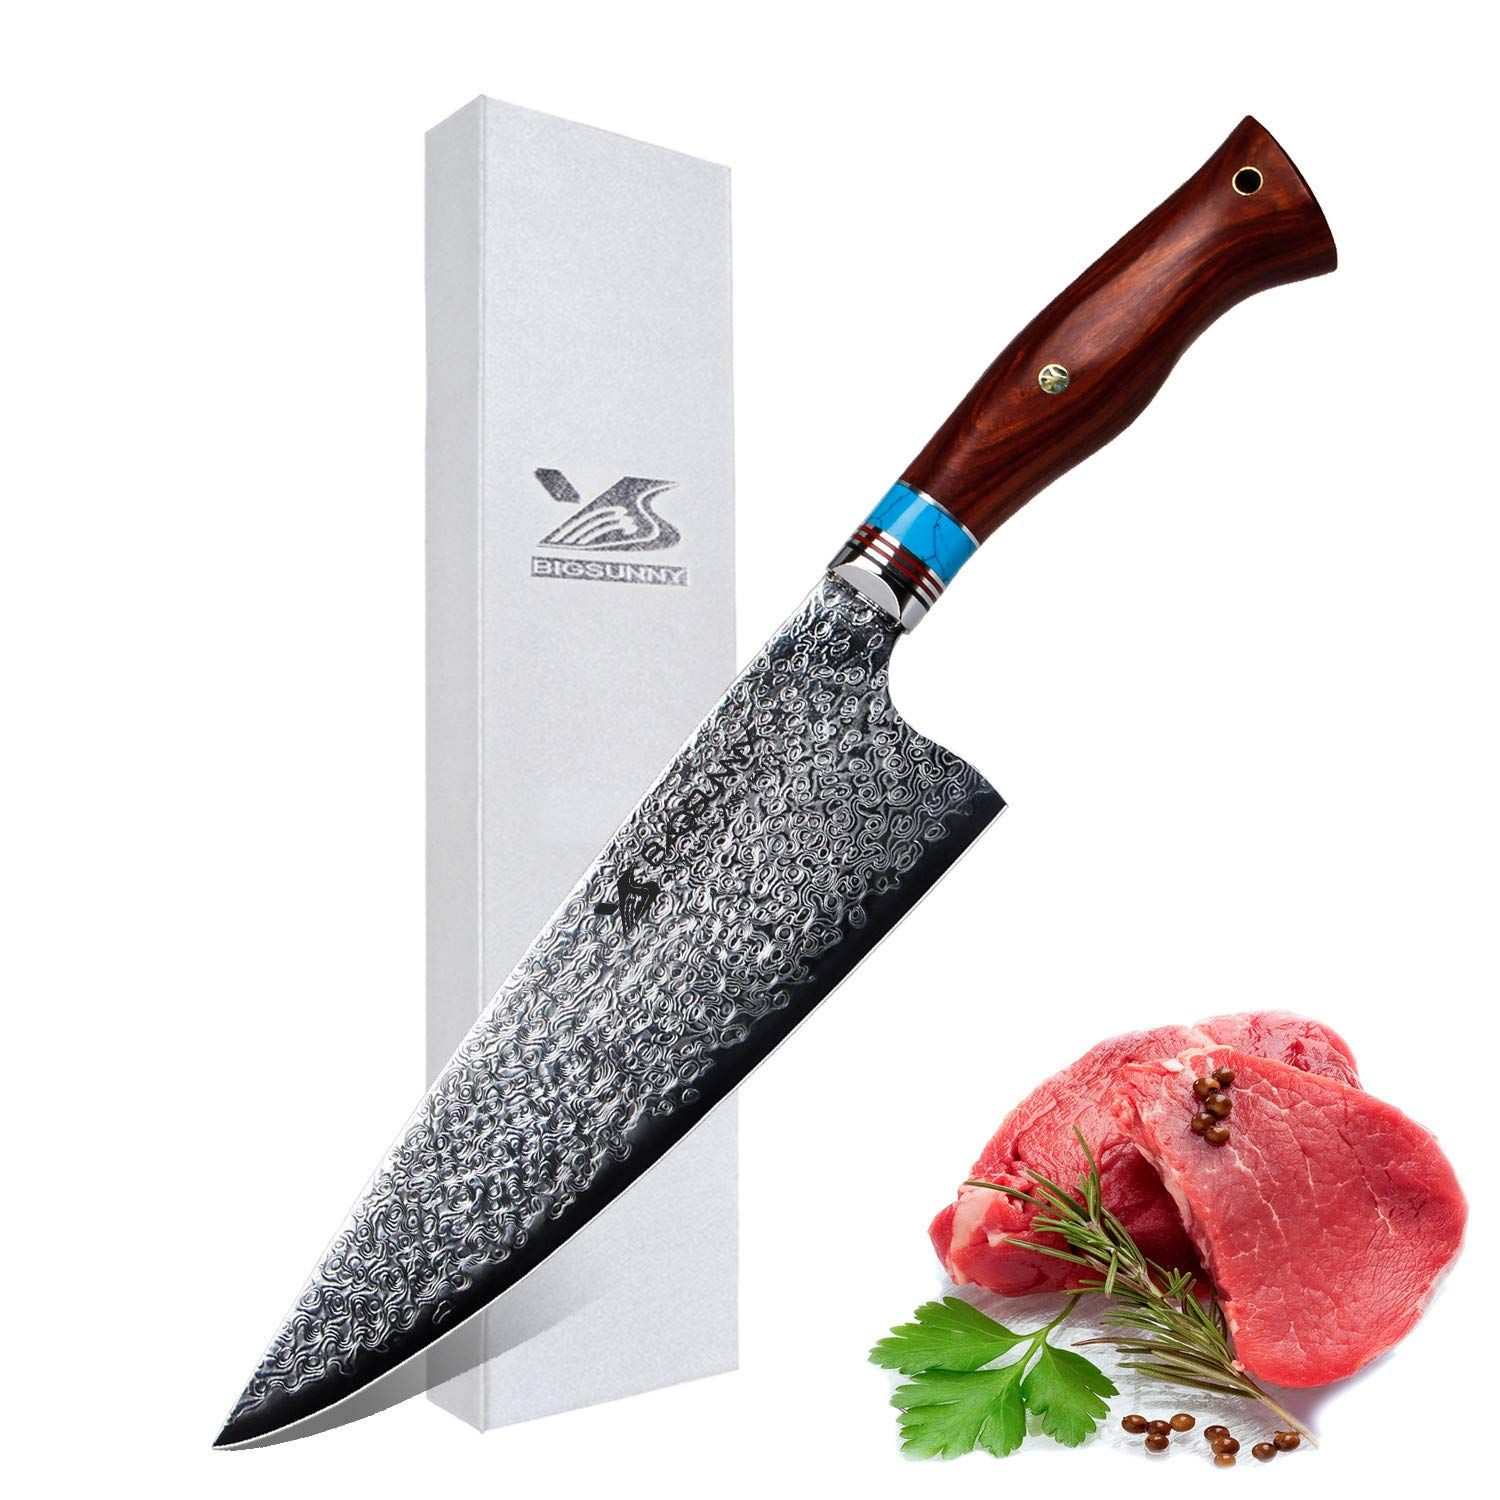 MSY BIGSUNNY Chef Knife - Best Quality Super Steel 67 Layers Damascus Steel - 8.4'' (213 mm) - Stain & Corrosion Resistant Chefs Knives by MSY BIGSUNNY